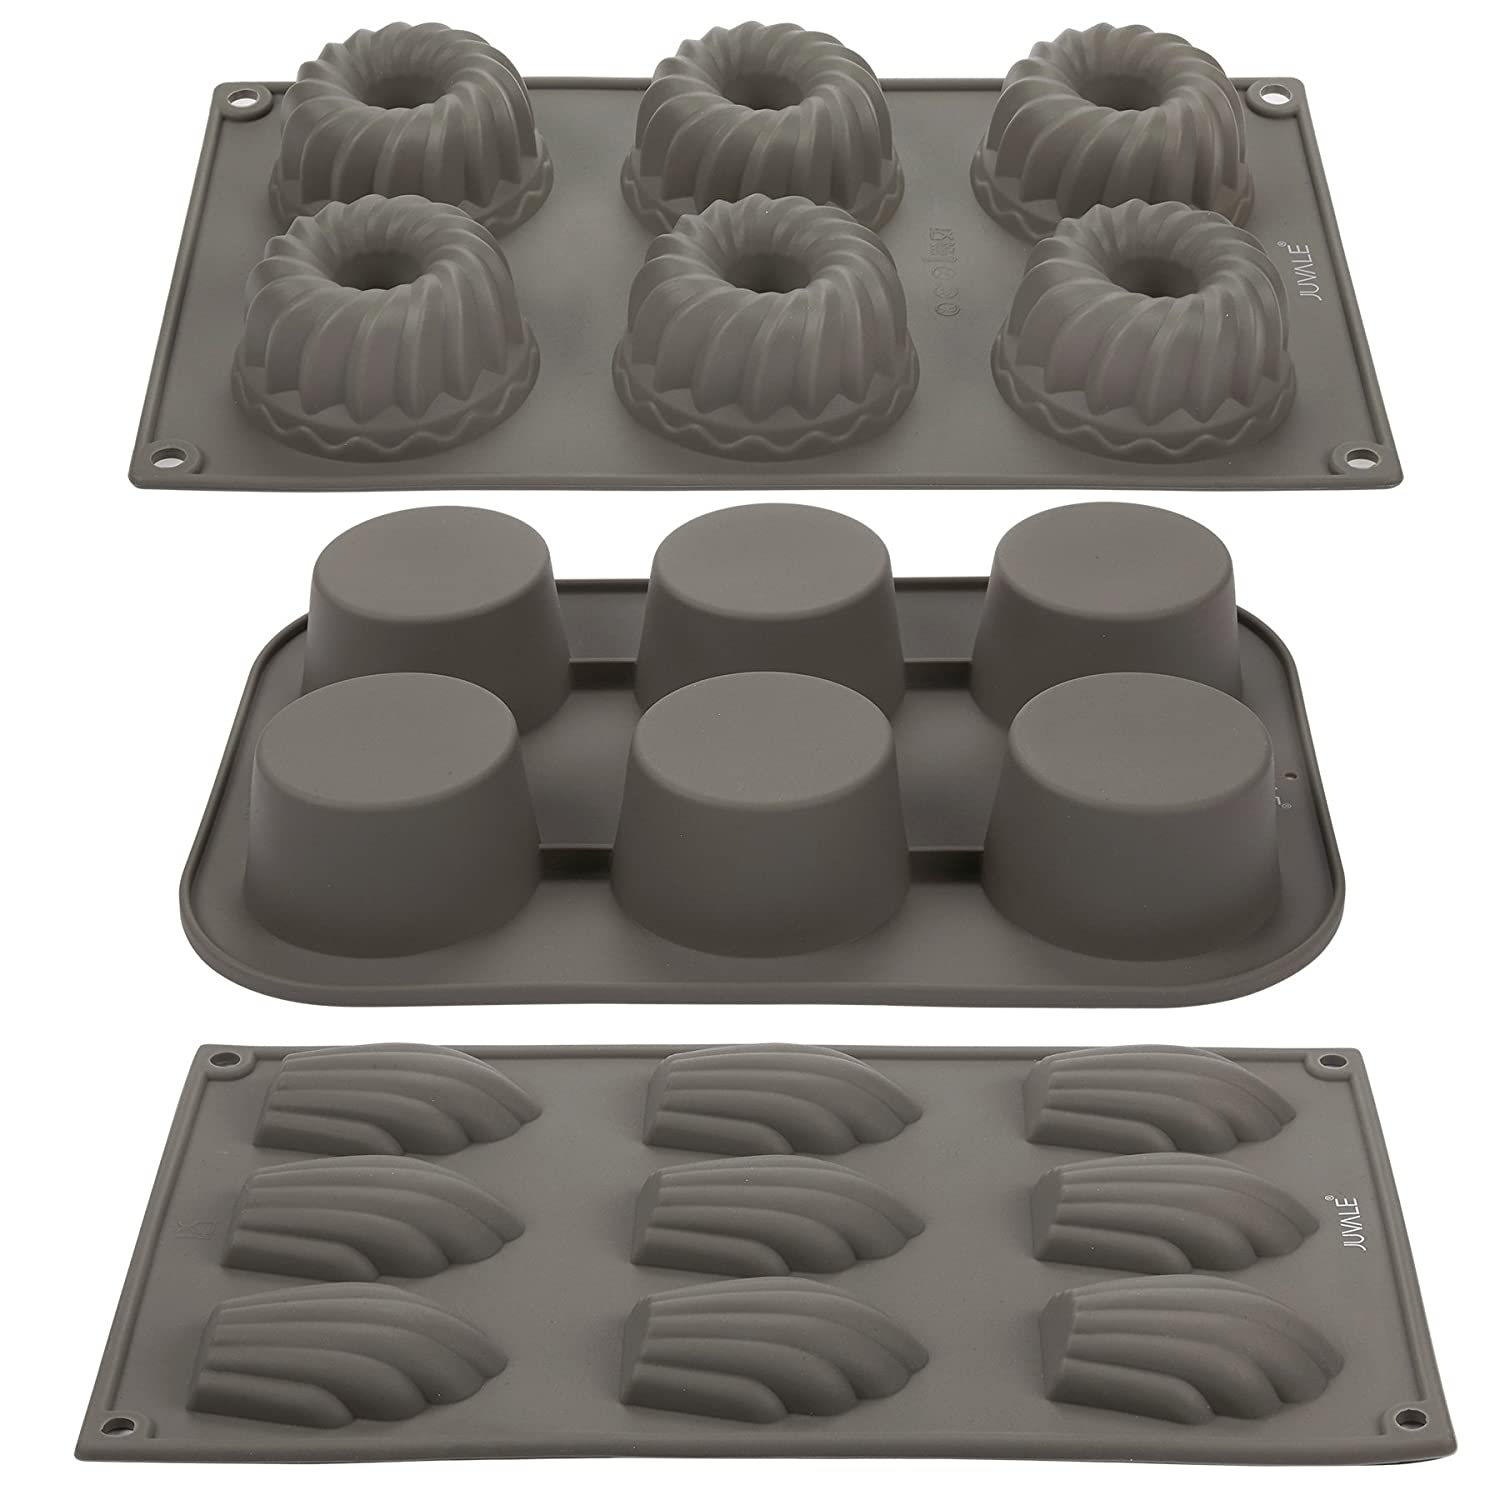 Silicone Baking Pans Set - Madeleines, Muffin/Cupcake, Bundt Cake Molds - 3-in-1 Set - Non-Stick Silicone Bakeware Baking Mold Tray - Gray Juvale